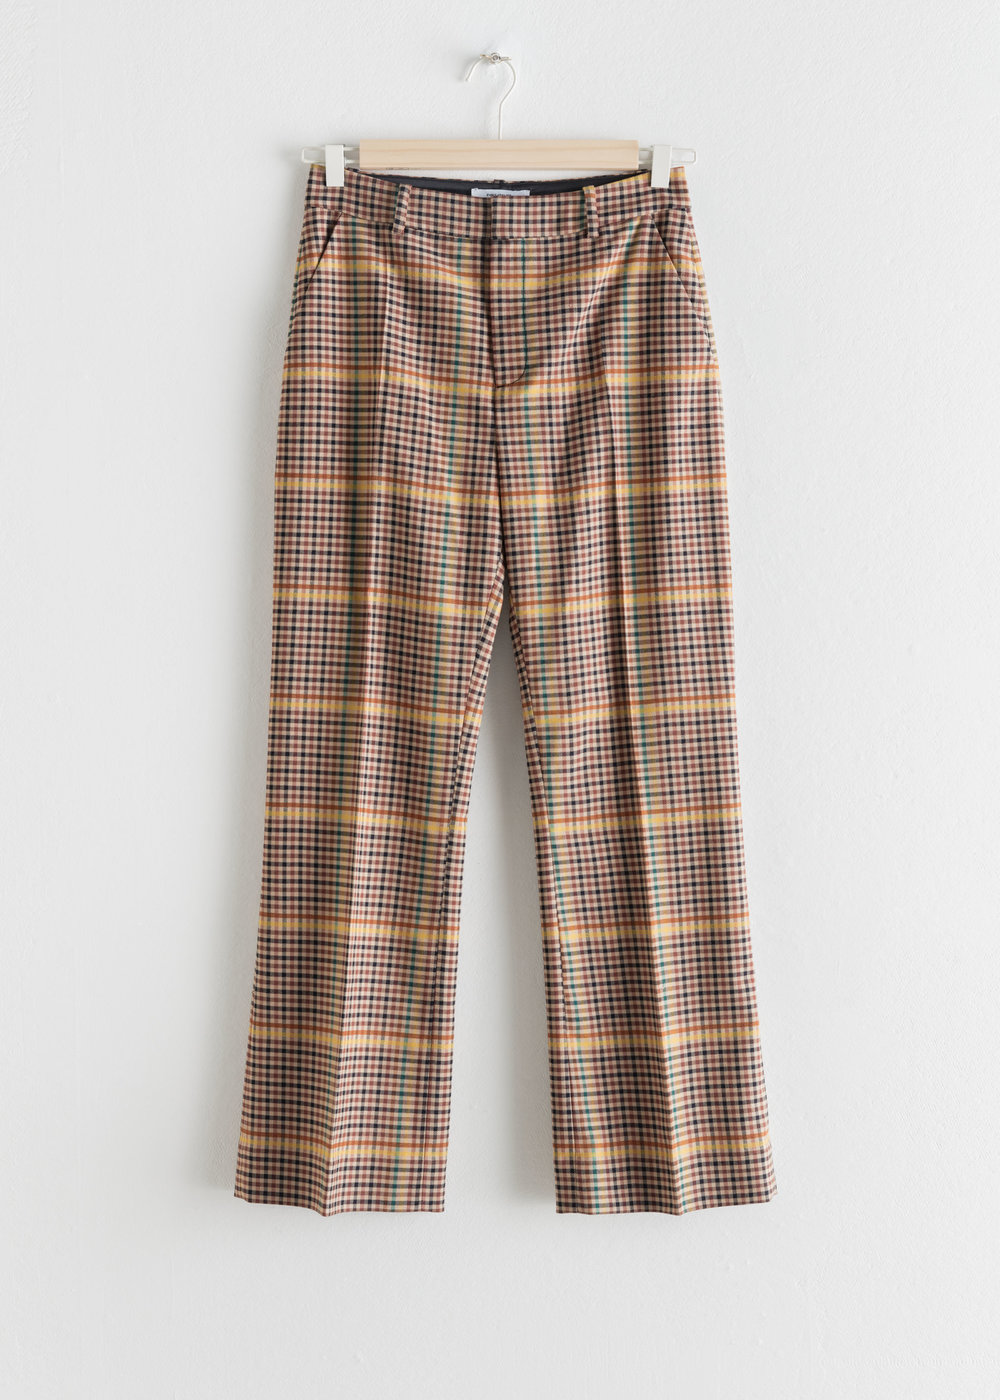 ROSE & IVY Journal The Find   A 70s Inspired Plaid Suit